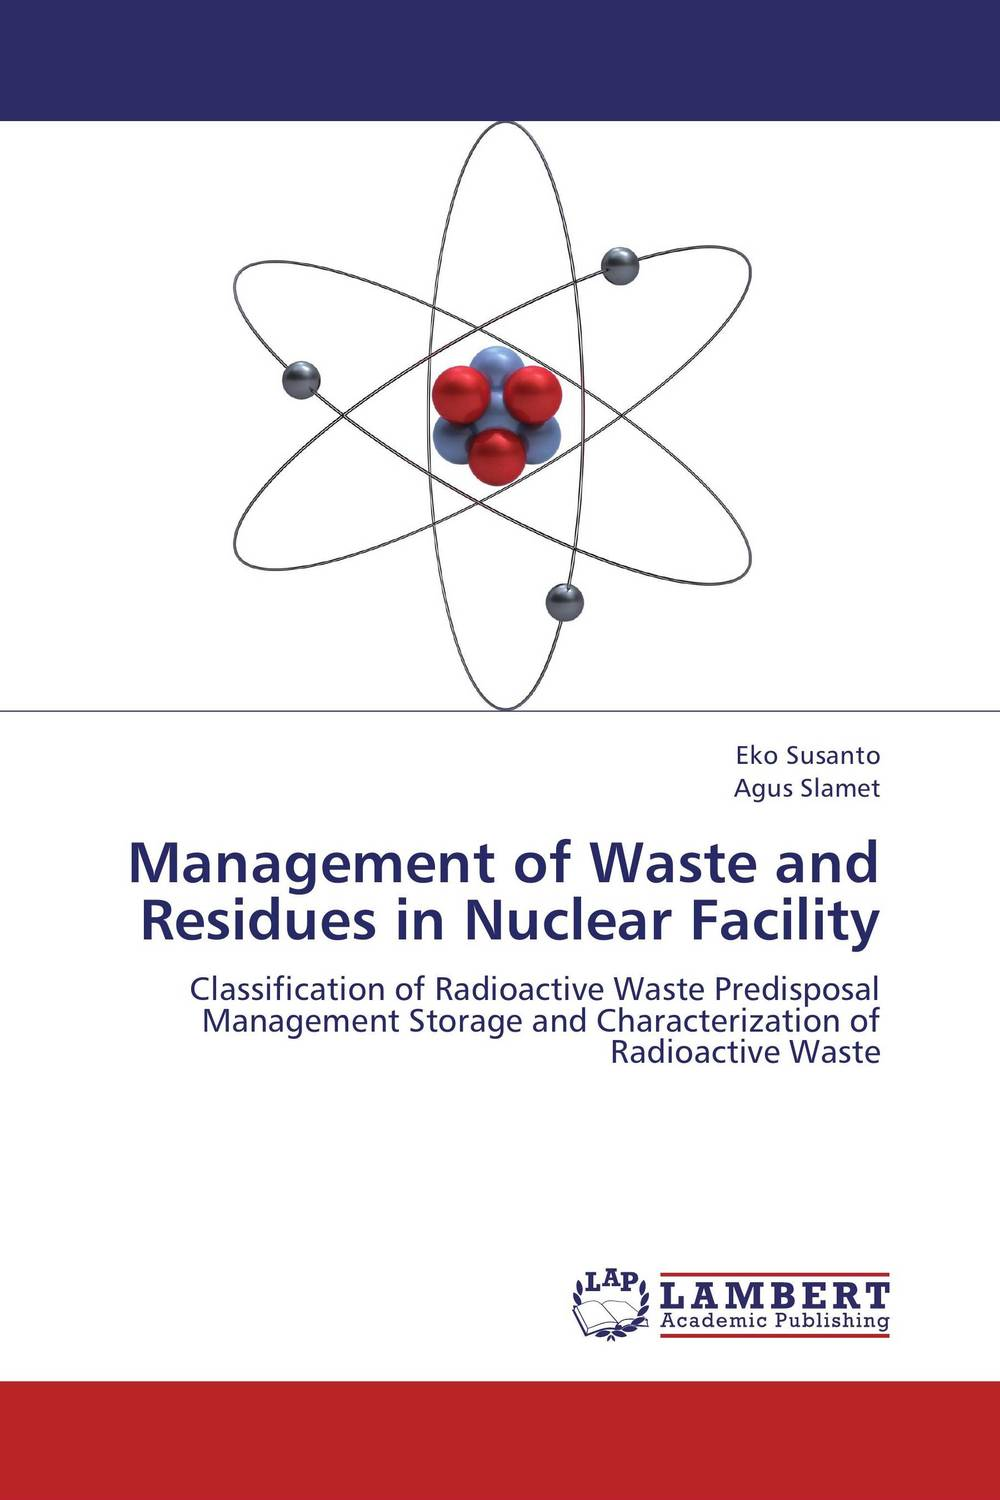 Management of Waste and Residues in Nuclear Facility graftobian аквагрим propaint neon radioactive green for hair and nails only цвет neon radioactive green for hair and nails only